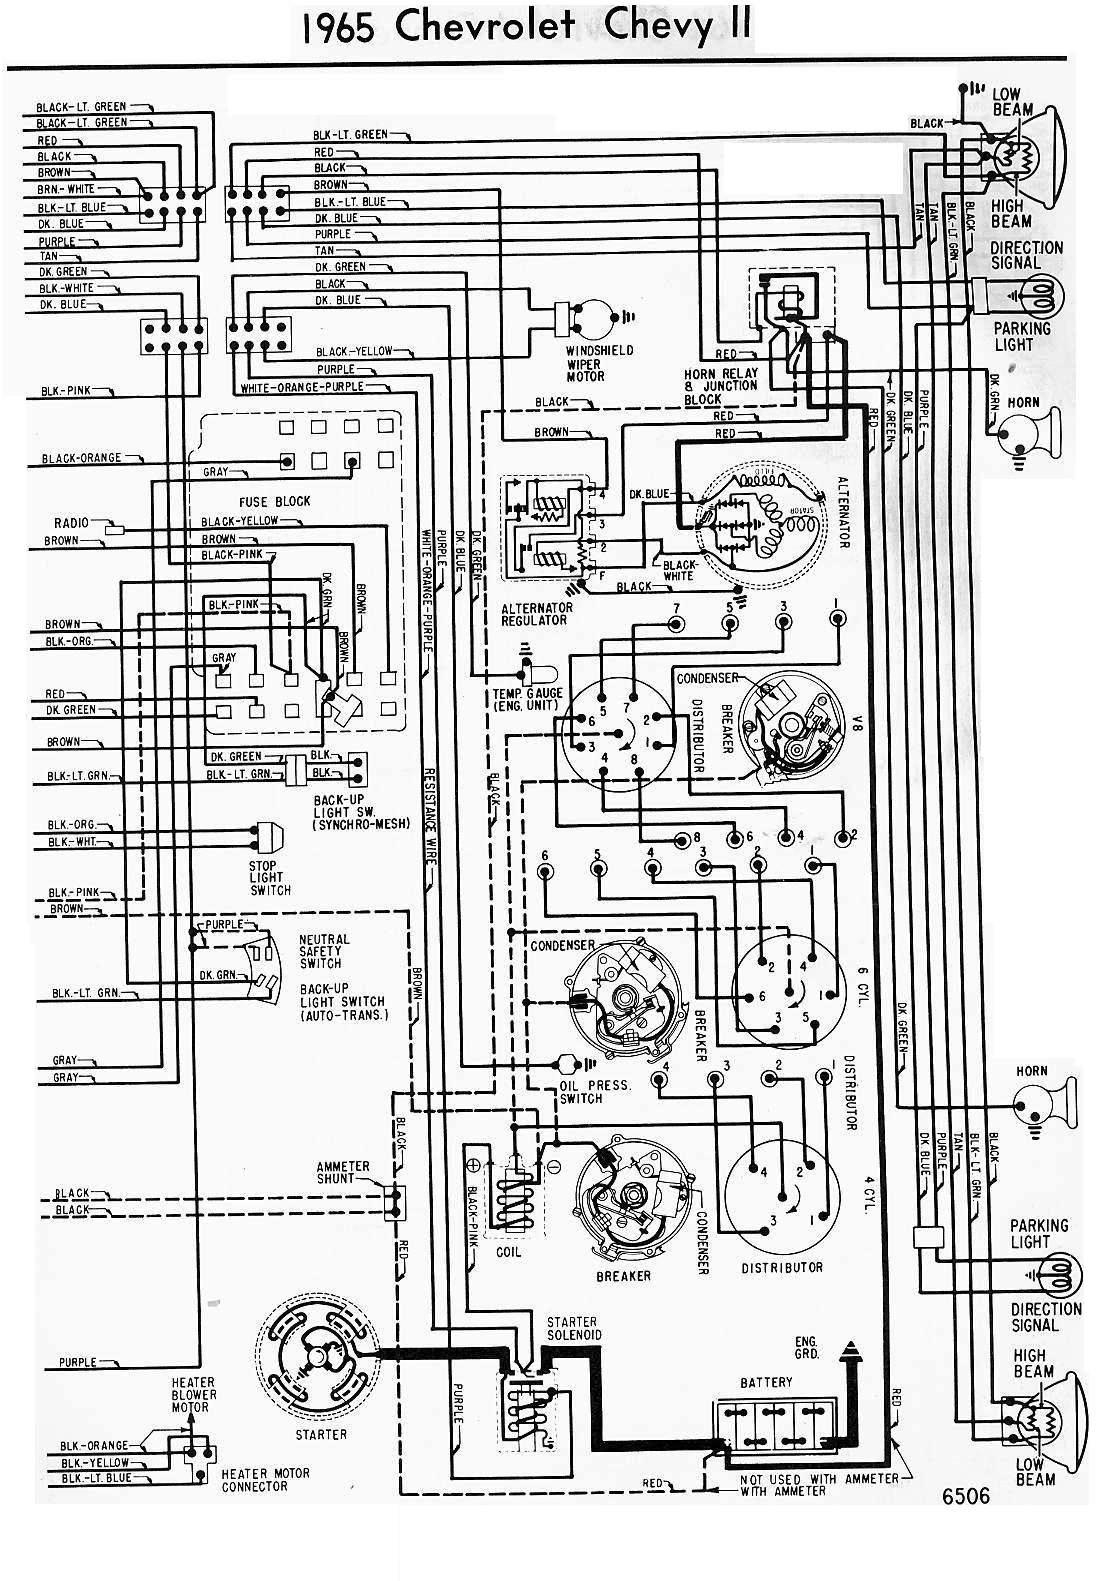 64 Corvette Horn Relay Wiring Diagram Data Diagrams 1964 1965 Chevrolet Chevy Ii All About 63